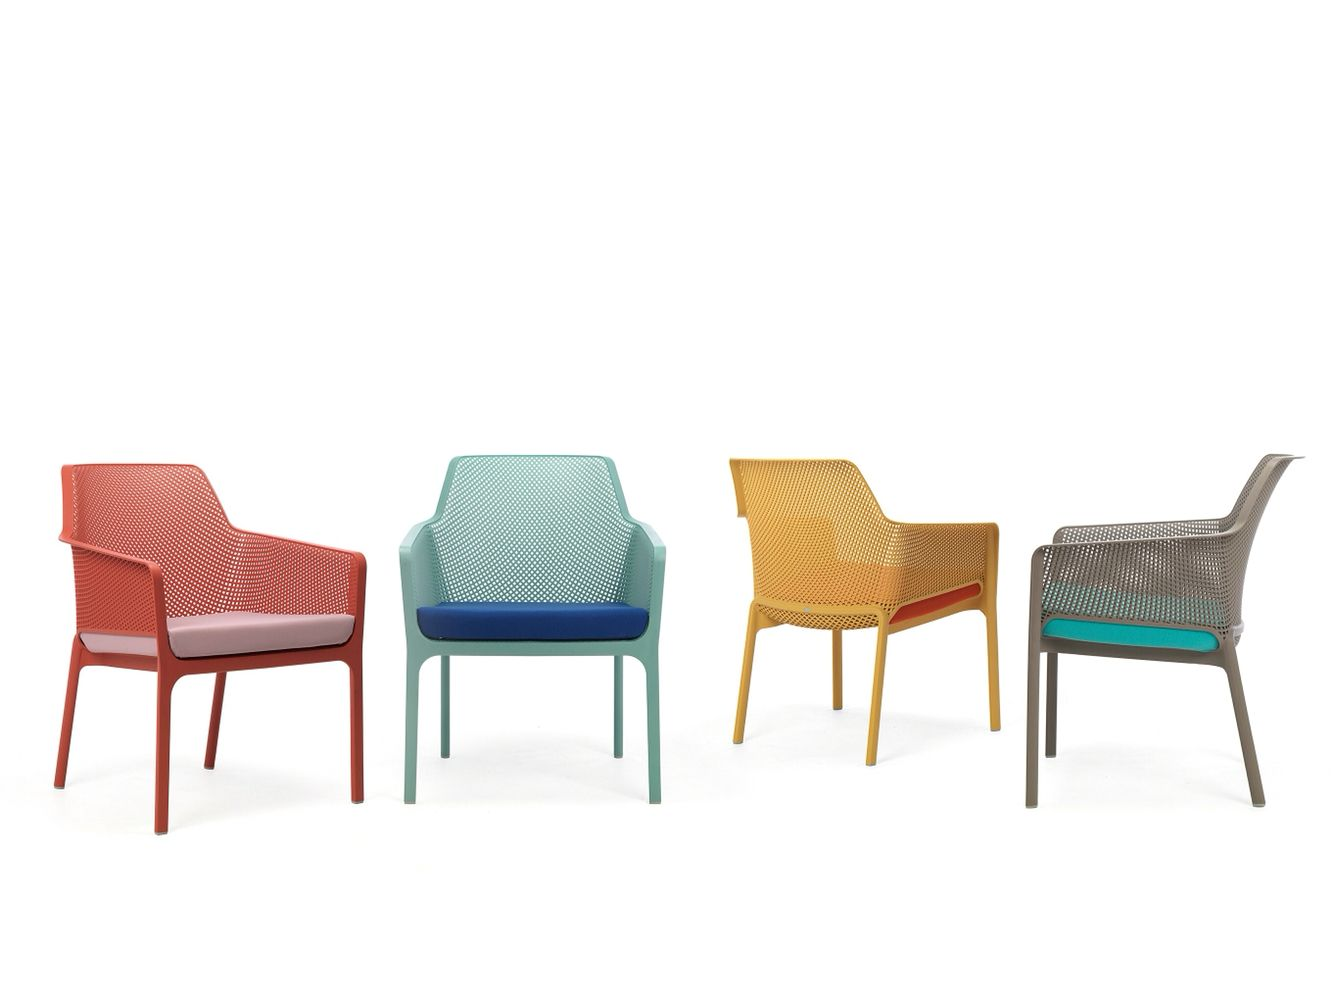 New nardi net relax chair coming soon to australia available at outdoor furniture ideas